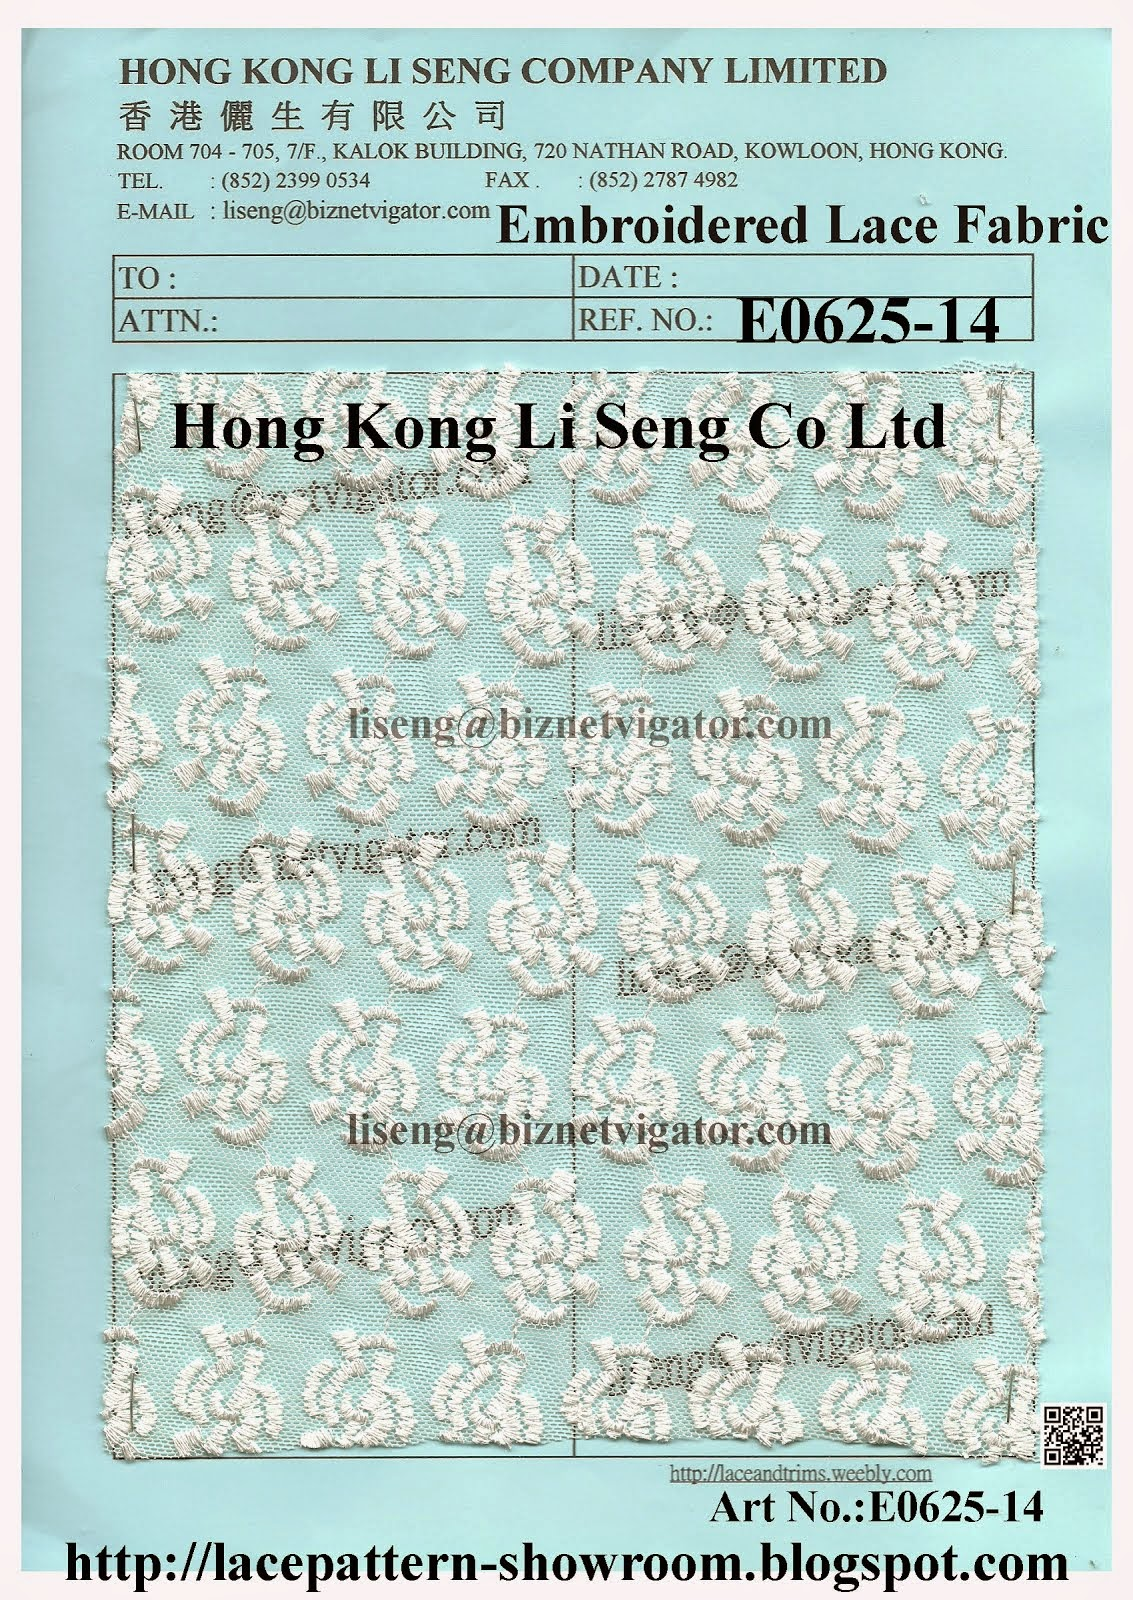 Embroidered Net Lace Fabric Manufacturer Wholesale Supplier - Hong Kong Li Seng Co Ltd